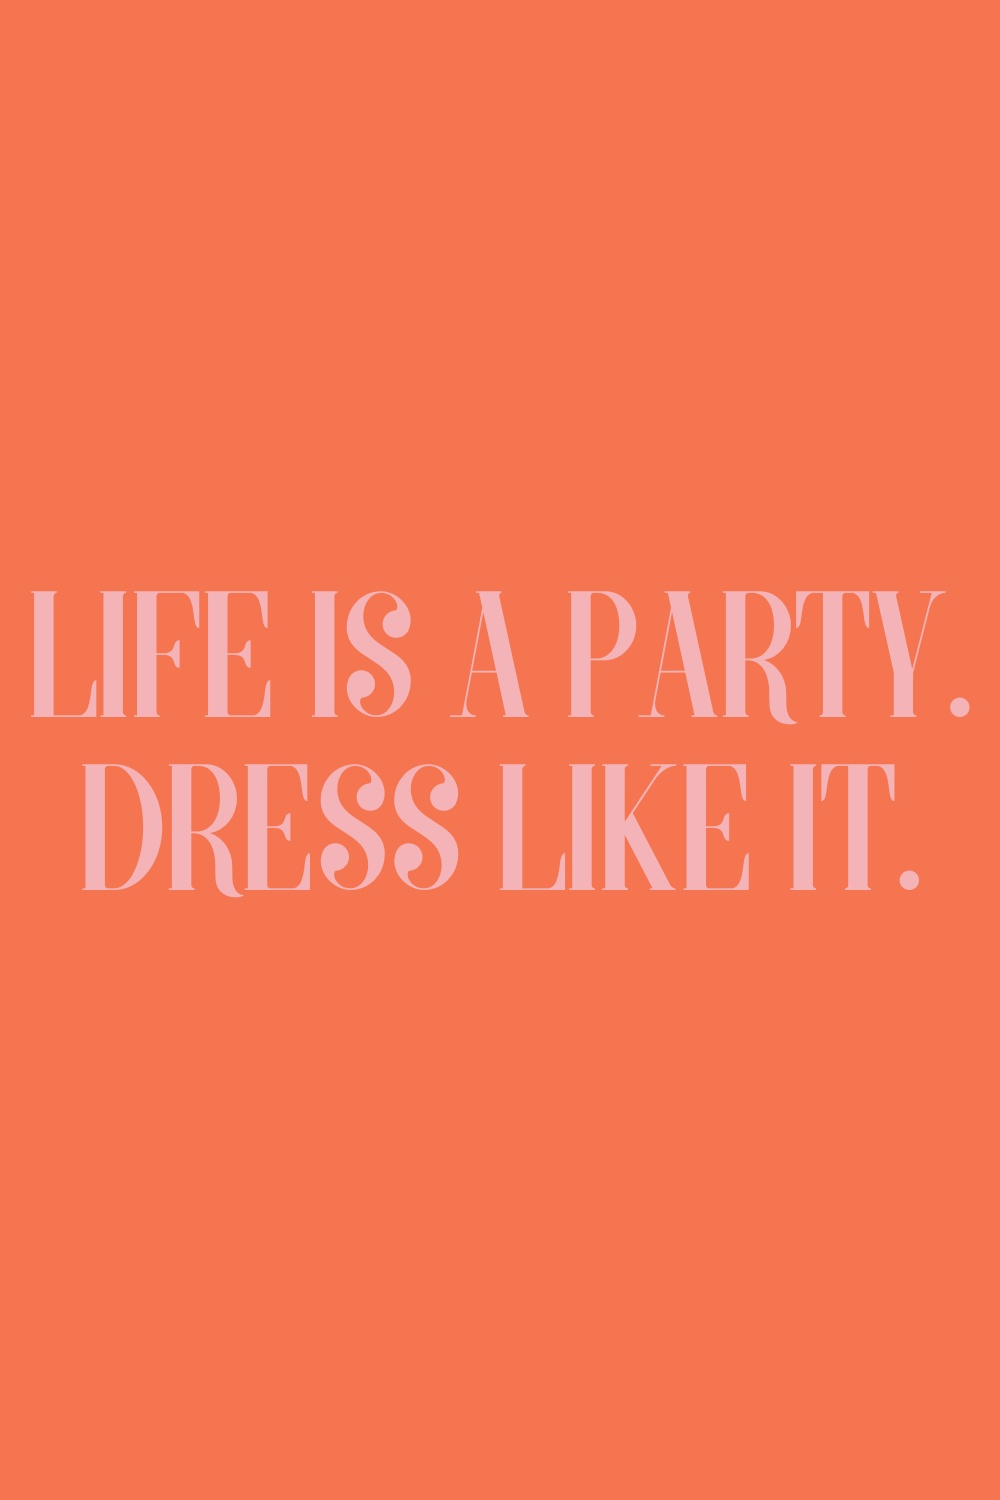 Life is a party quotes